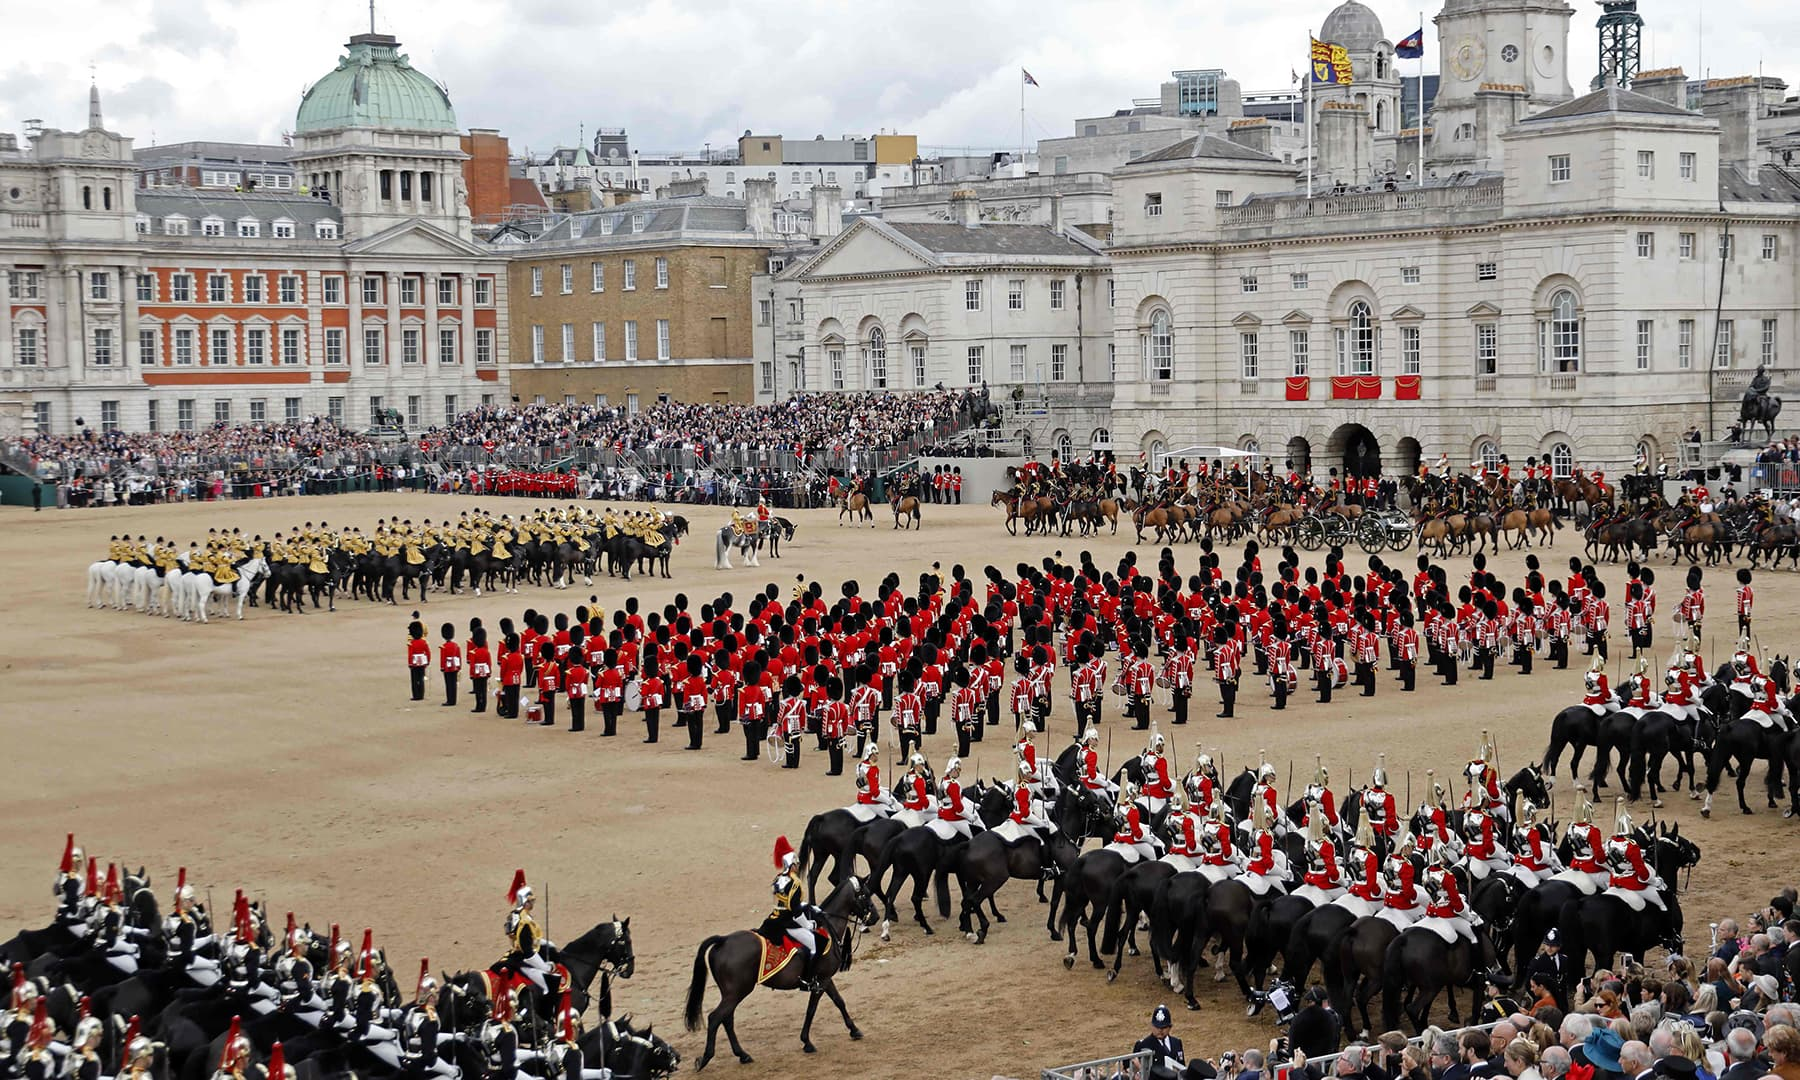 Britain's Queen Elizabeth II's Birthday Parade, 'Trooping the Colour', is performed in Horseguards parade in London on June 8. — AFP